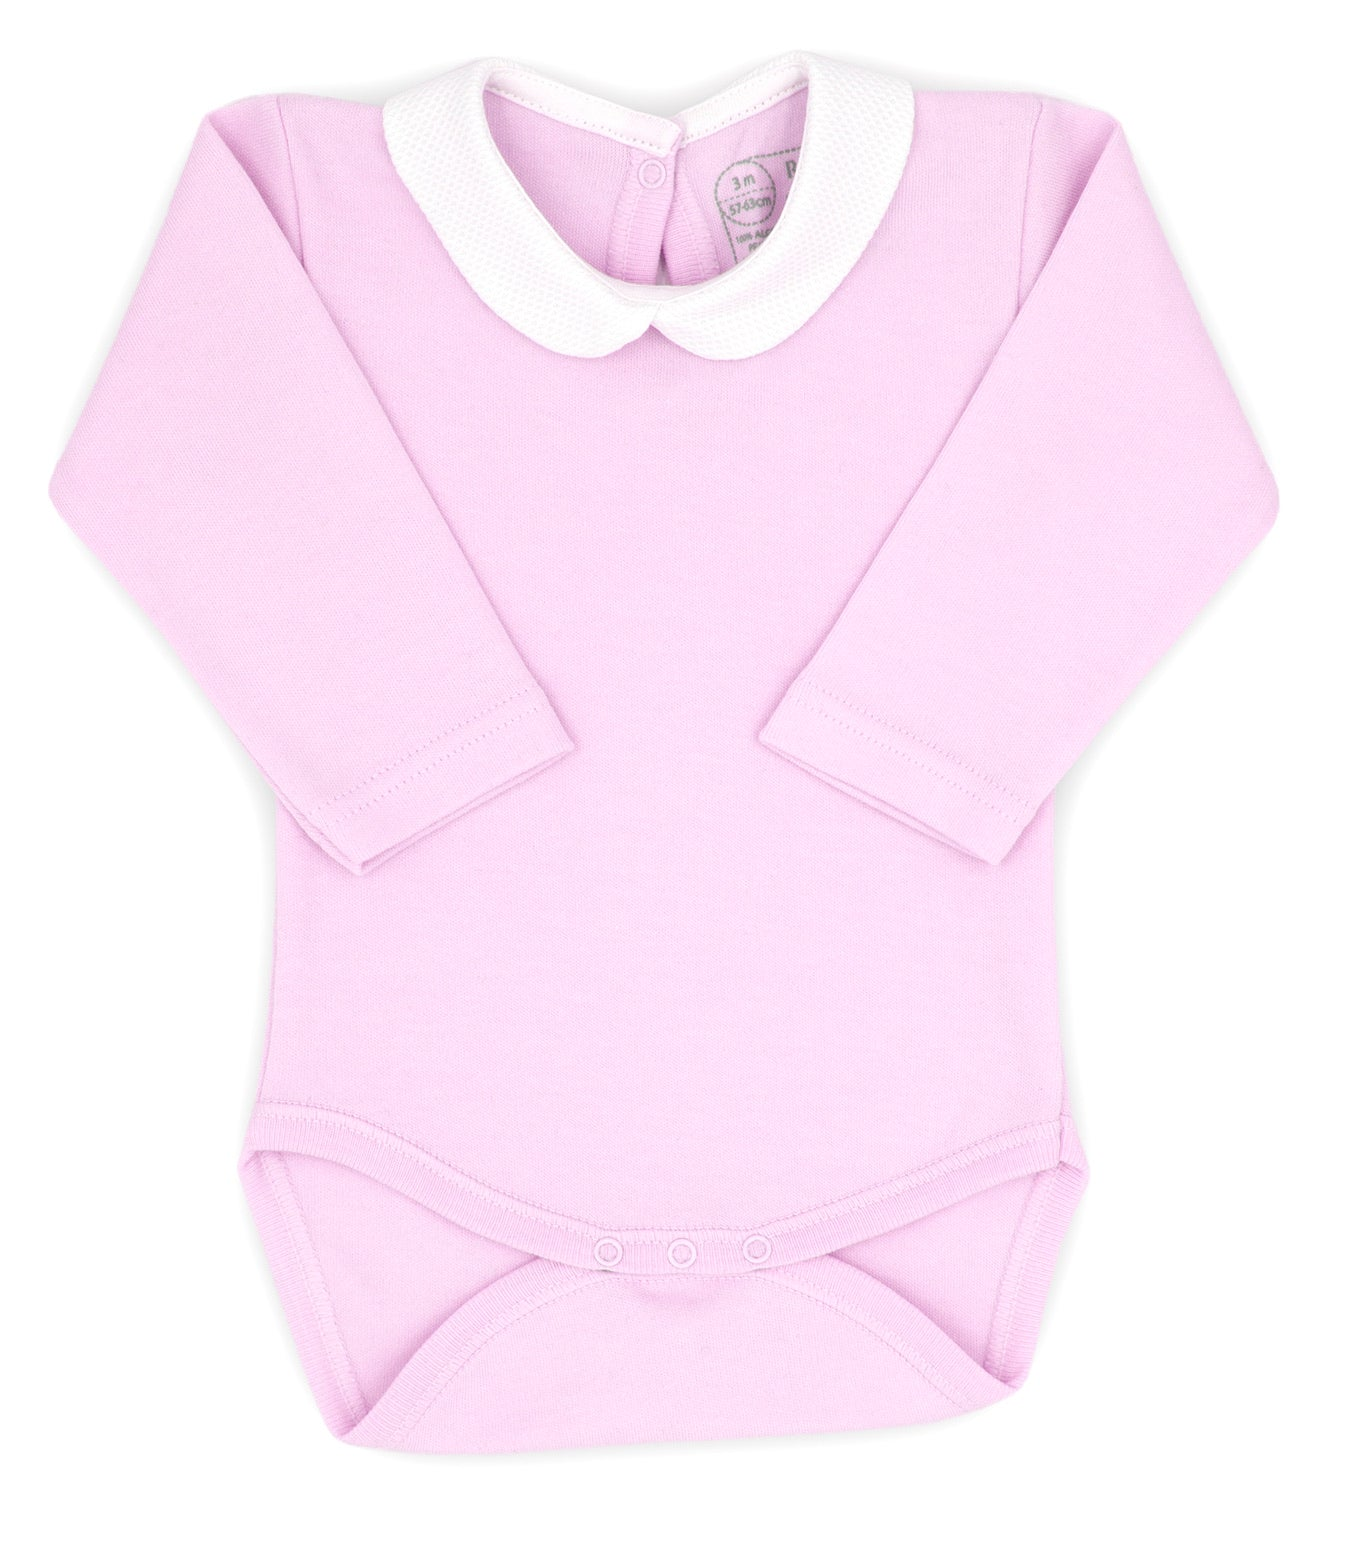 Rapife AW20 Peter Pan Collar Bodysuit Pink